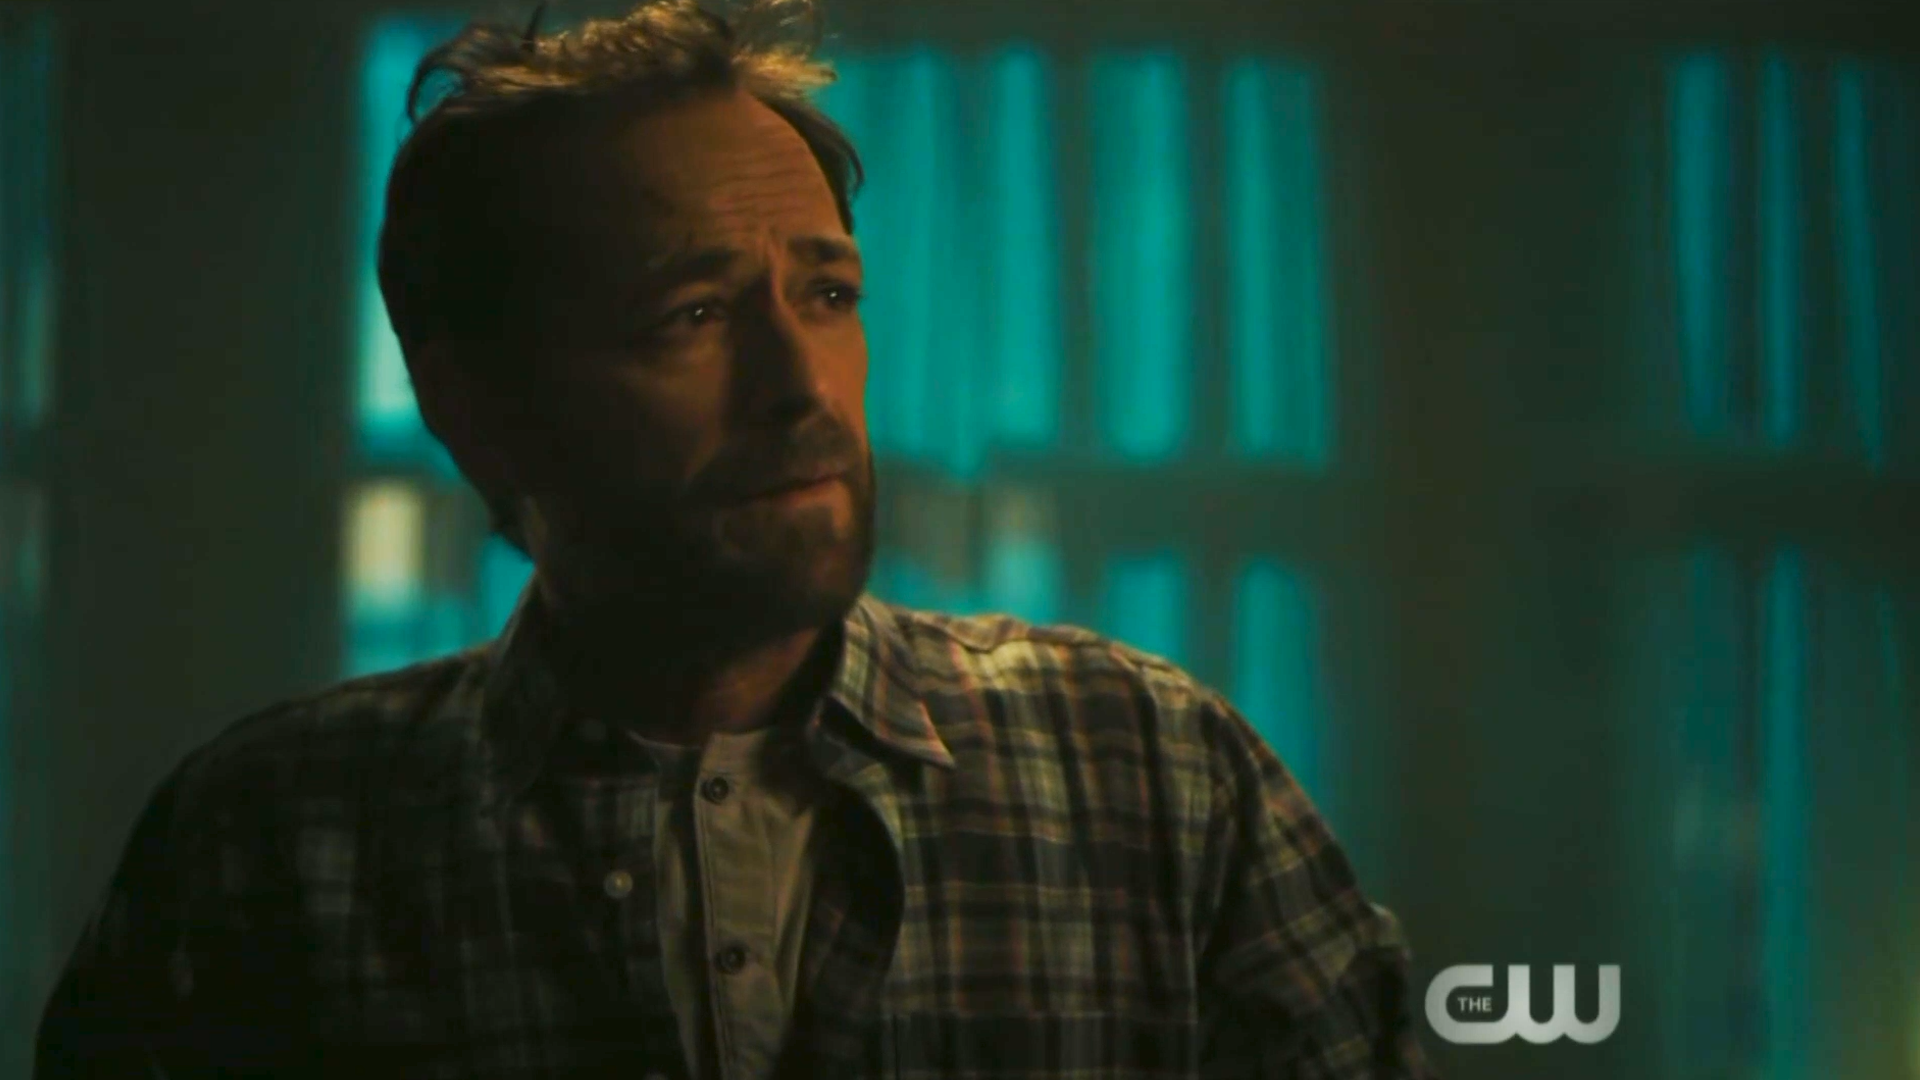 'Riverdale' Fans React To Last Episode Luke Perry Filmed Before He Died